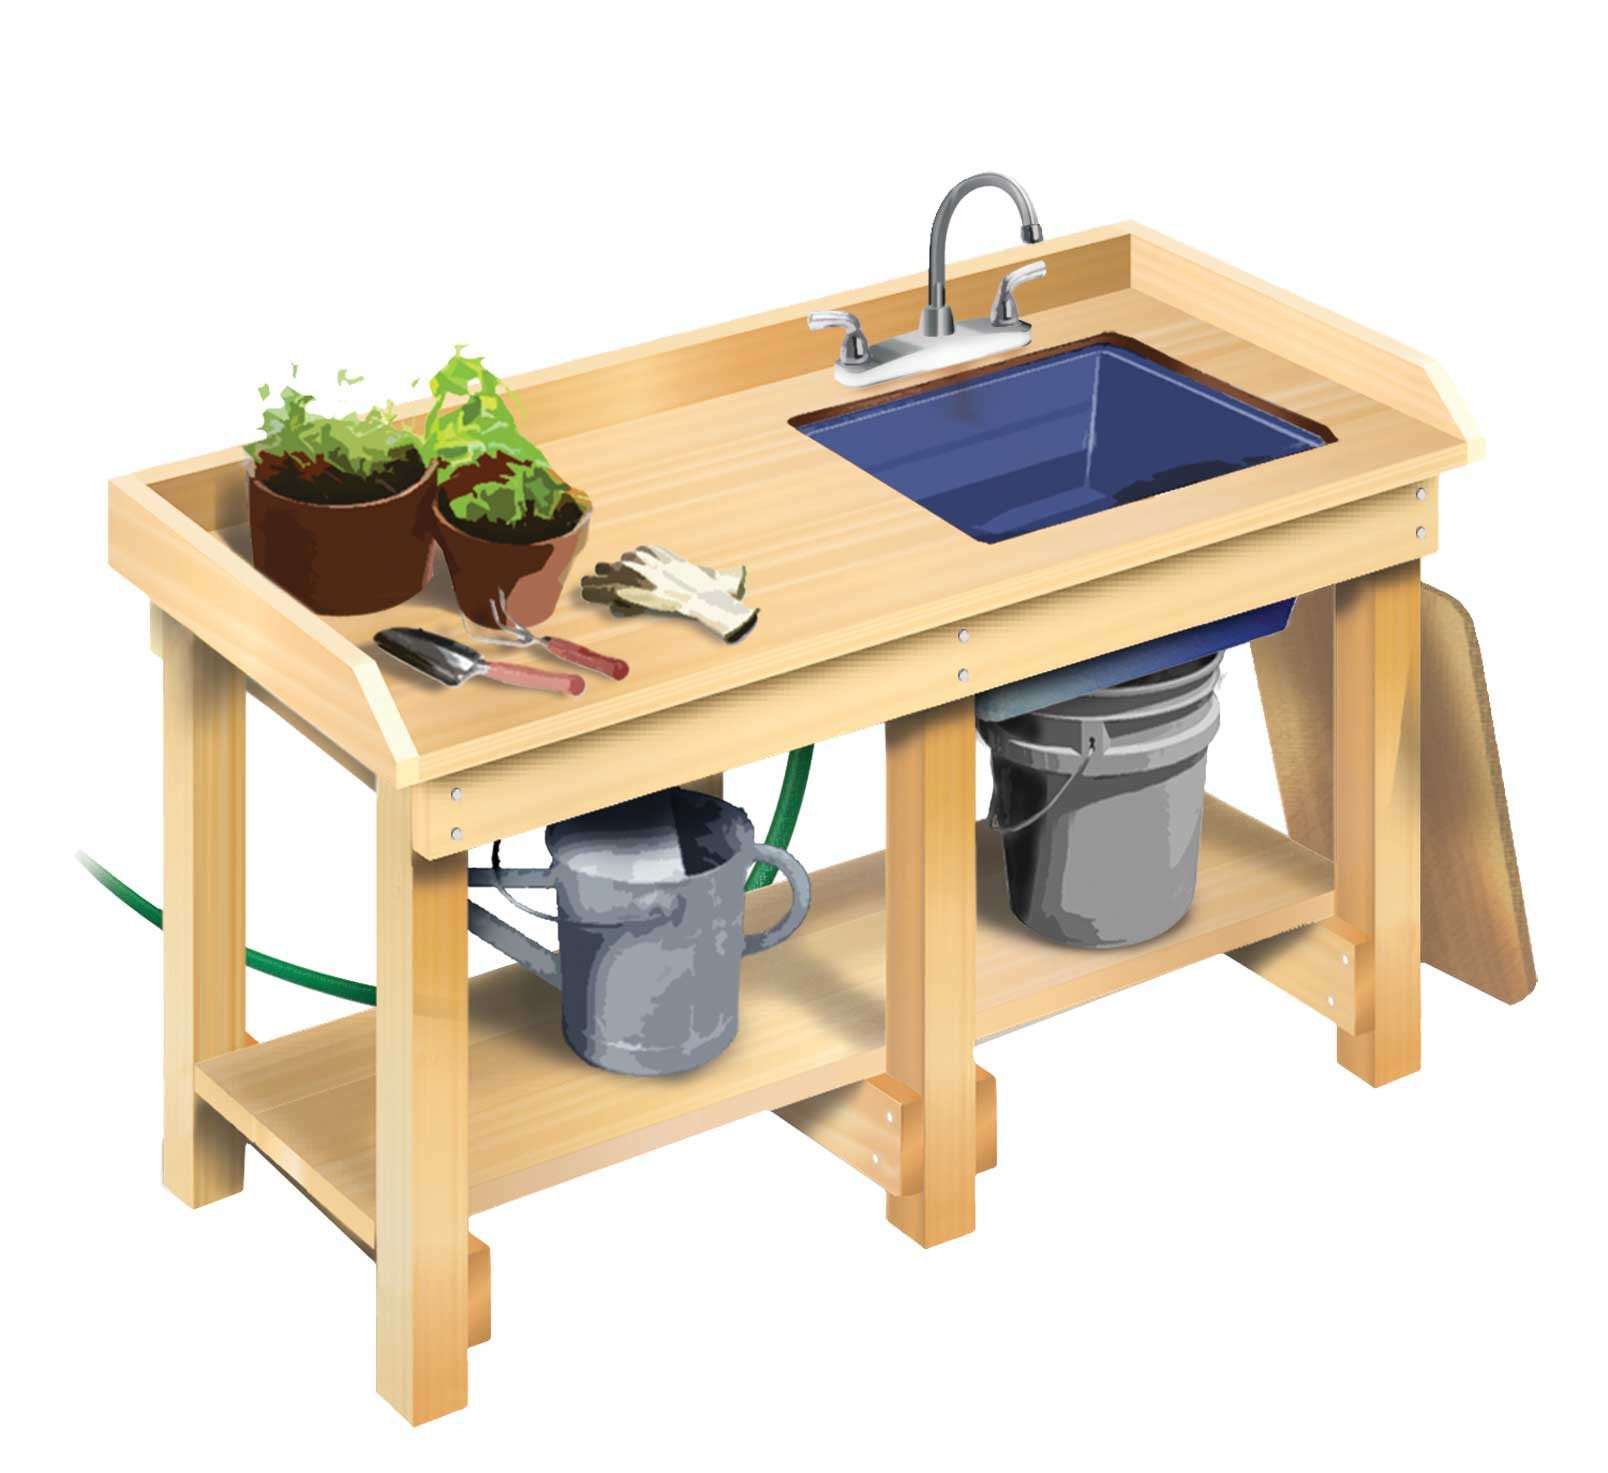 Best ideas about DIY Work Bench Plans . Save or Pin How to Build a Workbench DIY MOTHER EARTH NEWS Now.